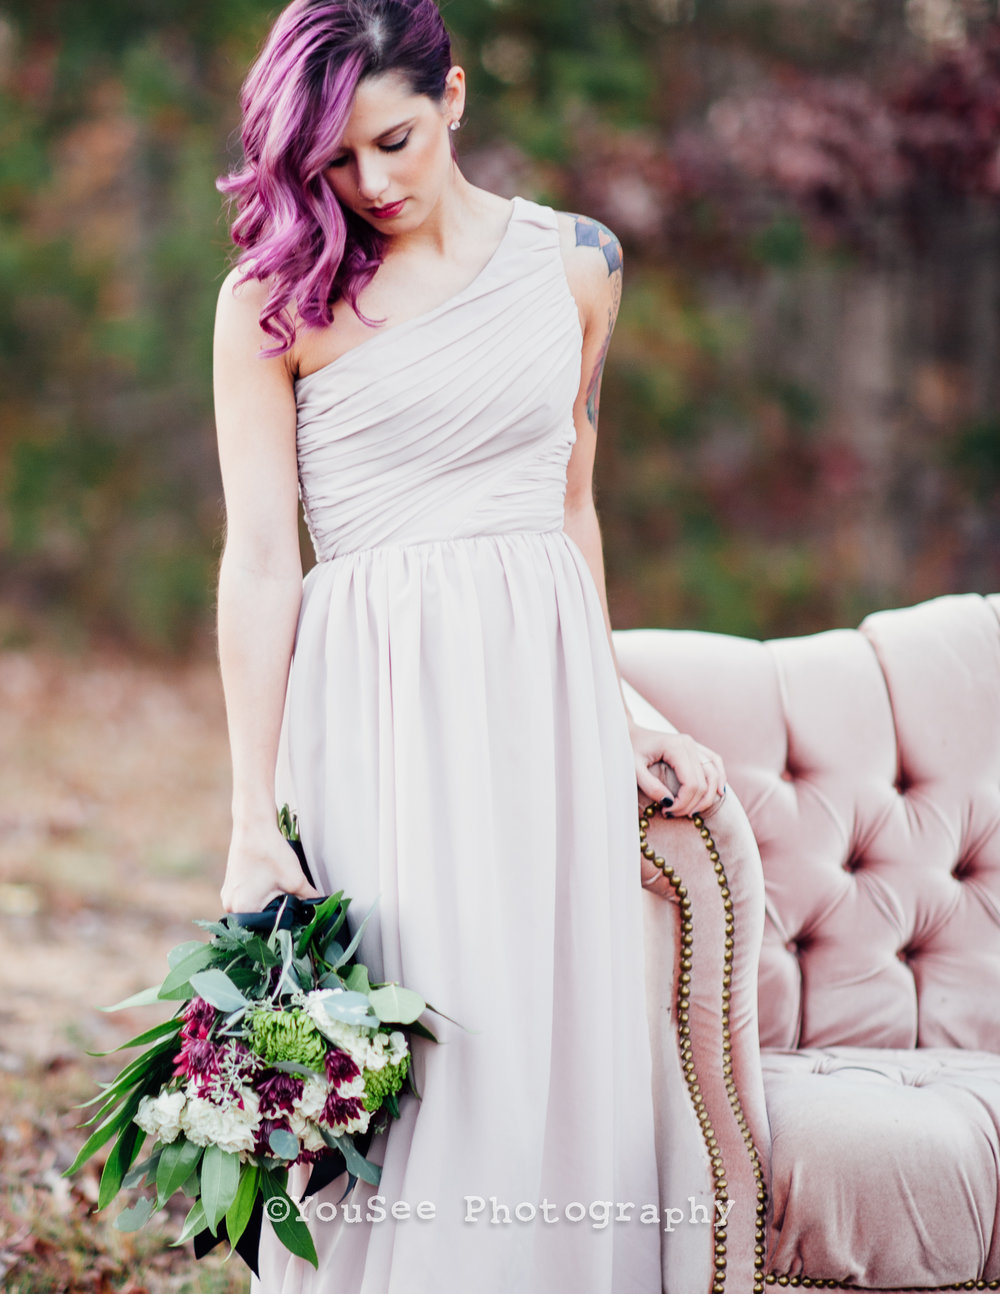 wedding_styledshoot_gothic_pursuit (8)